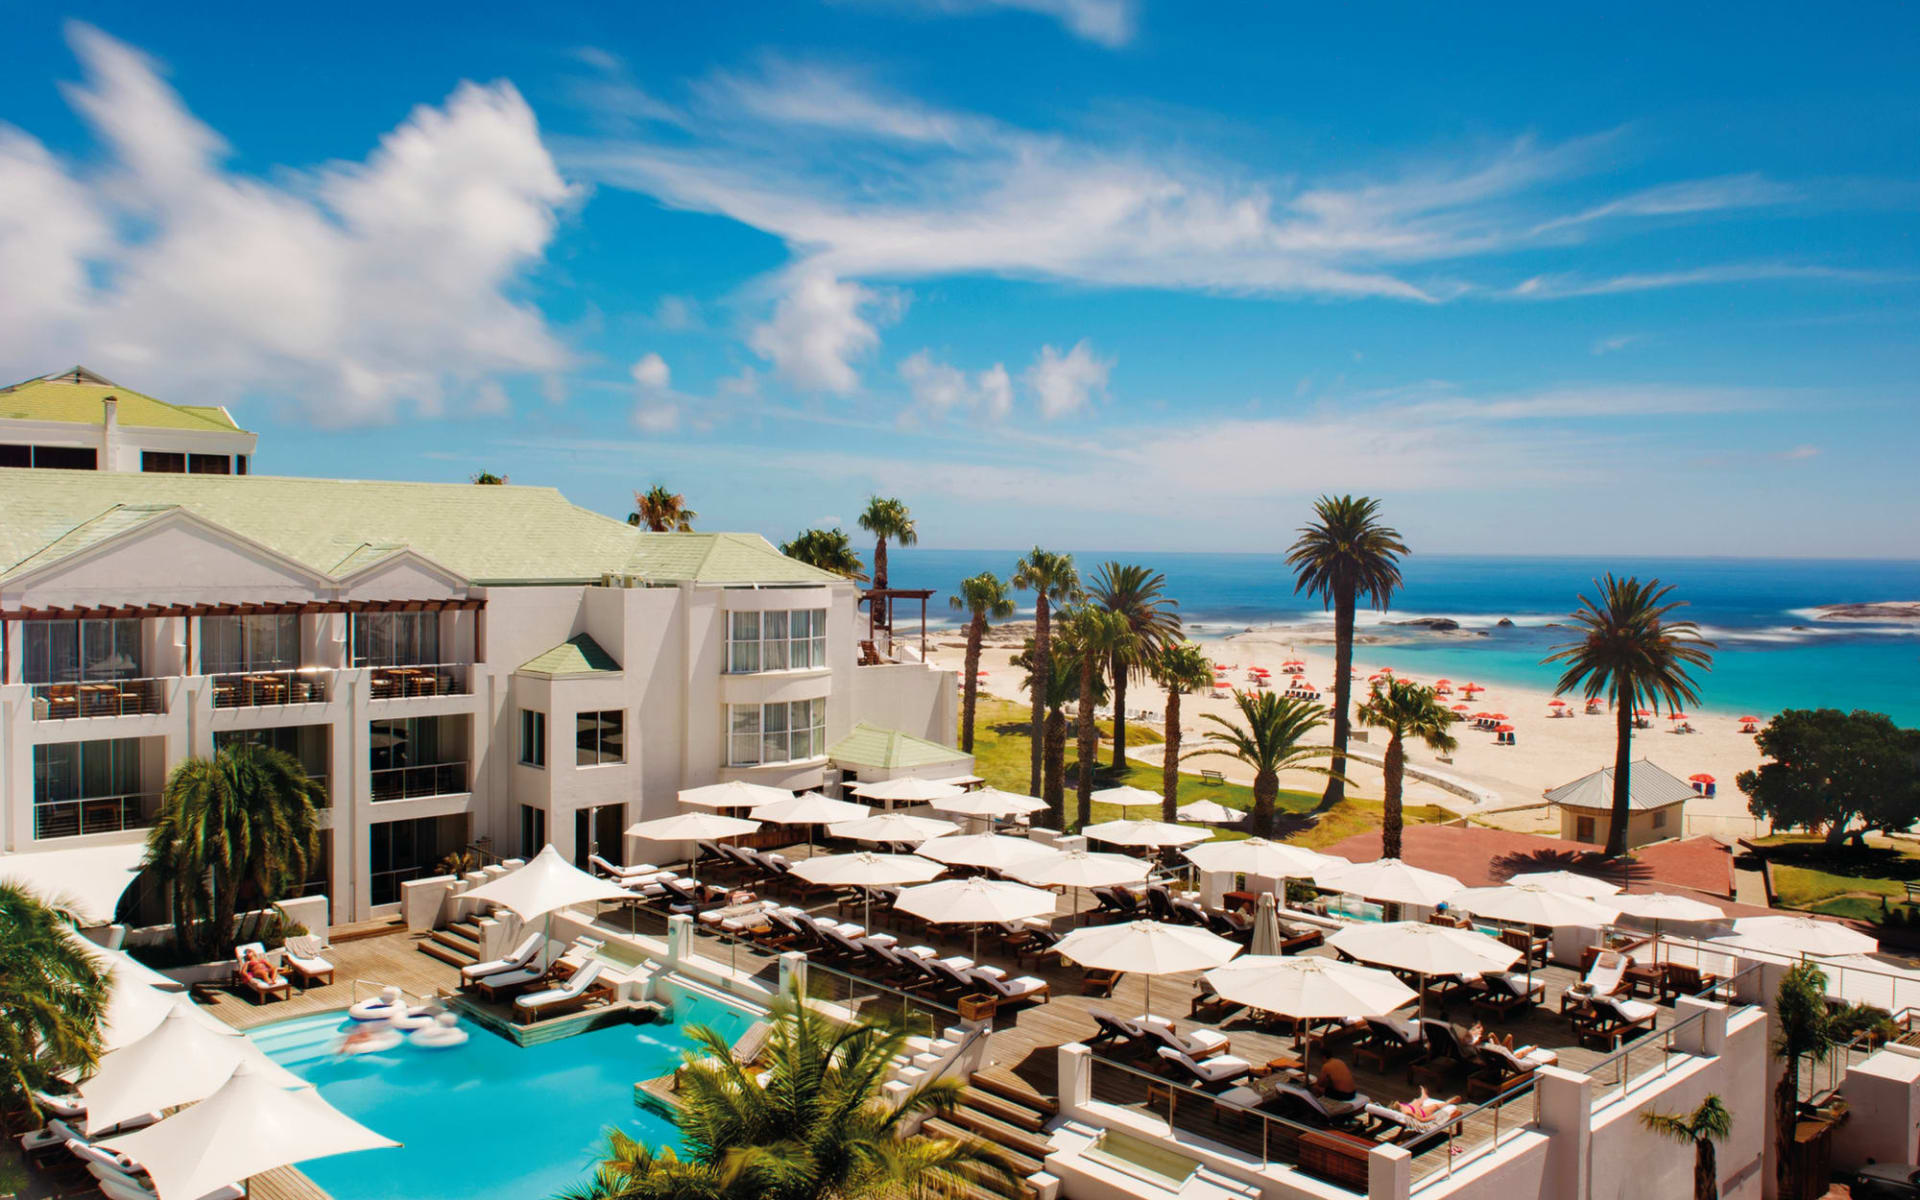 The Bay Hotel in Camps Bay:  exterior The Bay Hotel - Pool und Deck mit Strand von Camps BAy